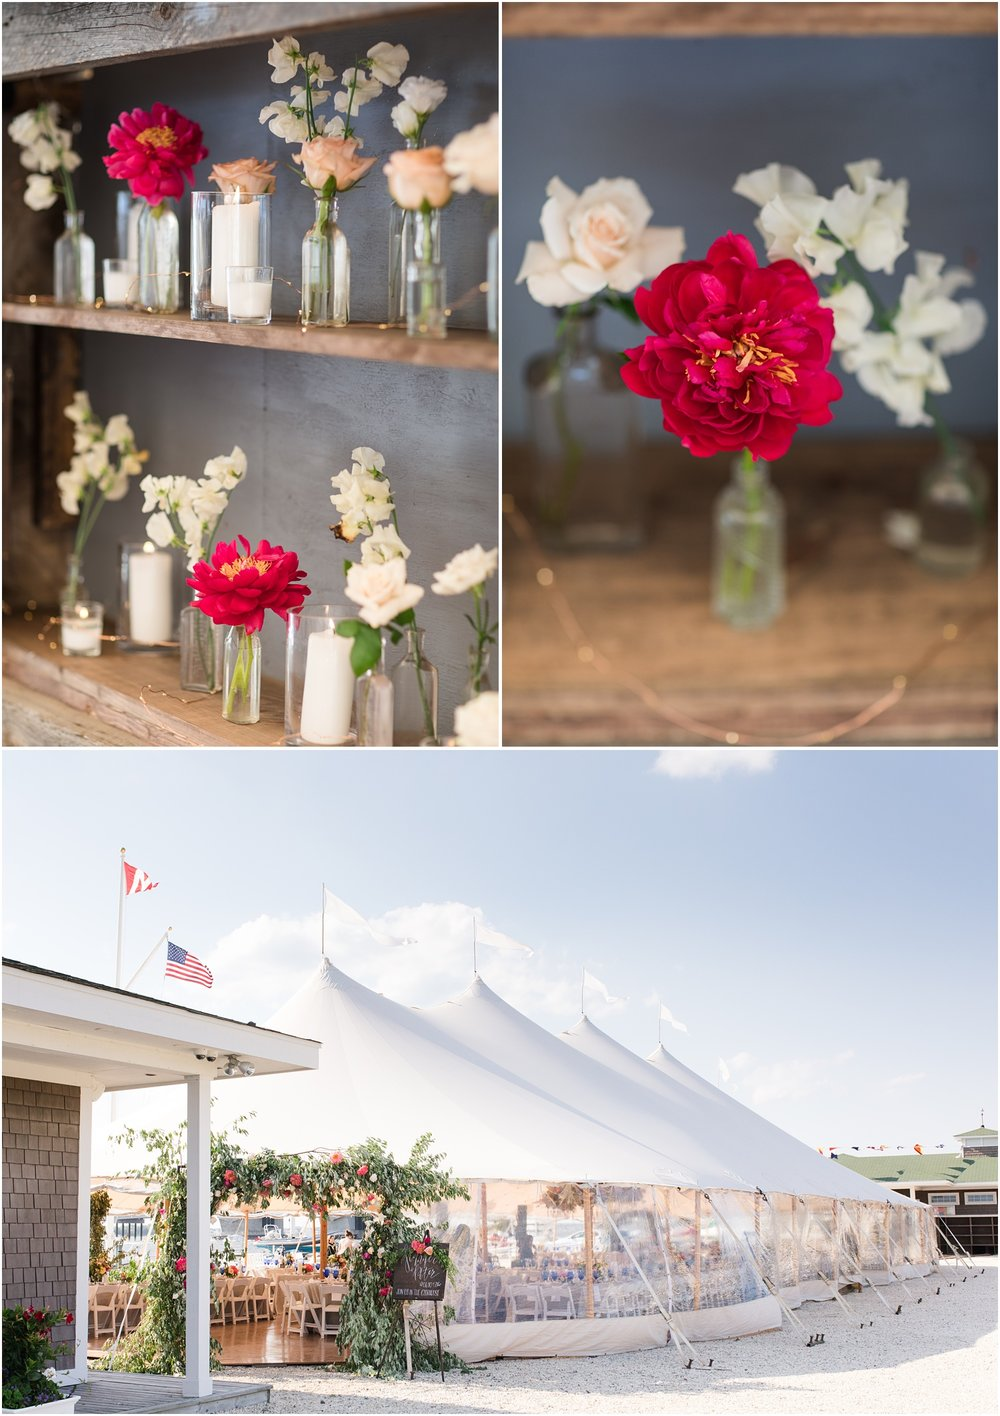 Photo of tent reception at Mantoloking Yacht Club published in New Jersey Bride Magazine.